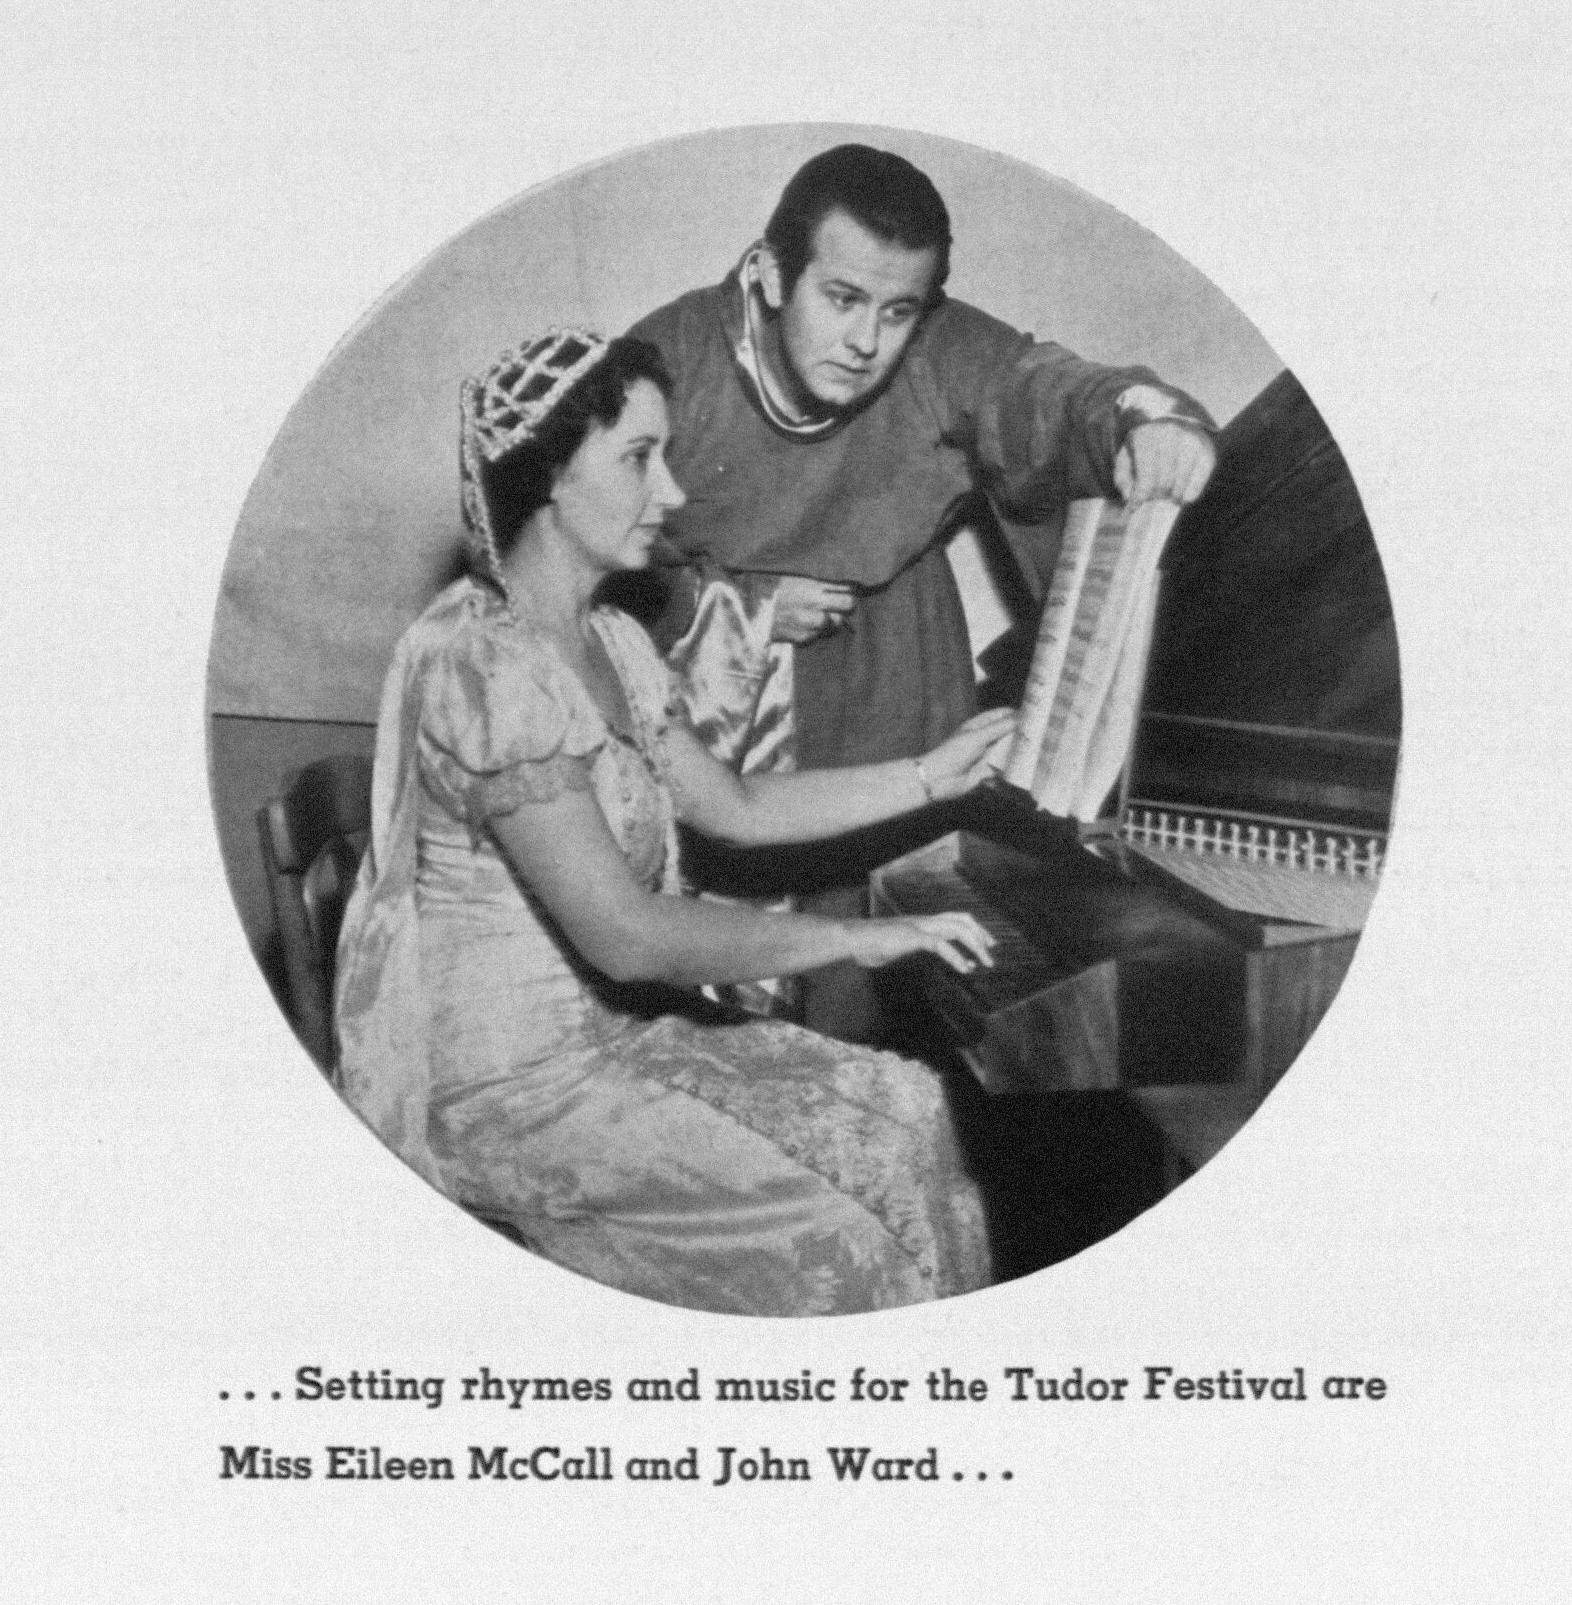 John Ward in 1940, with Eileen McCall, a music professor at San Francisco State College.